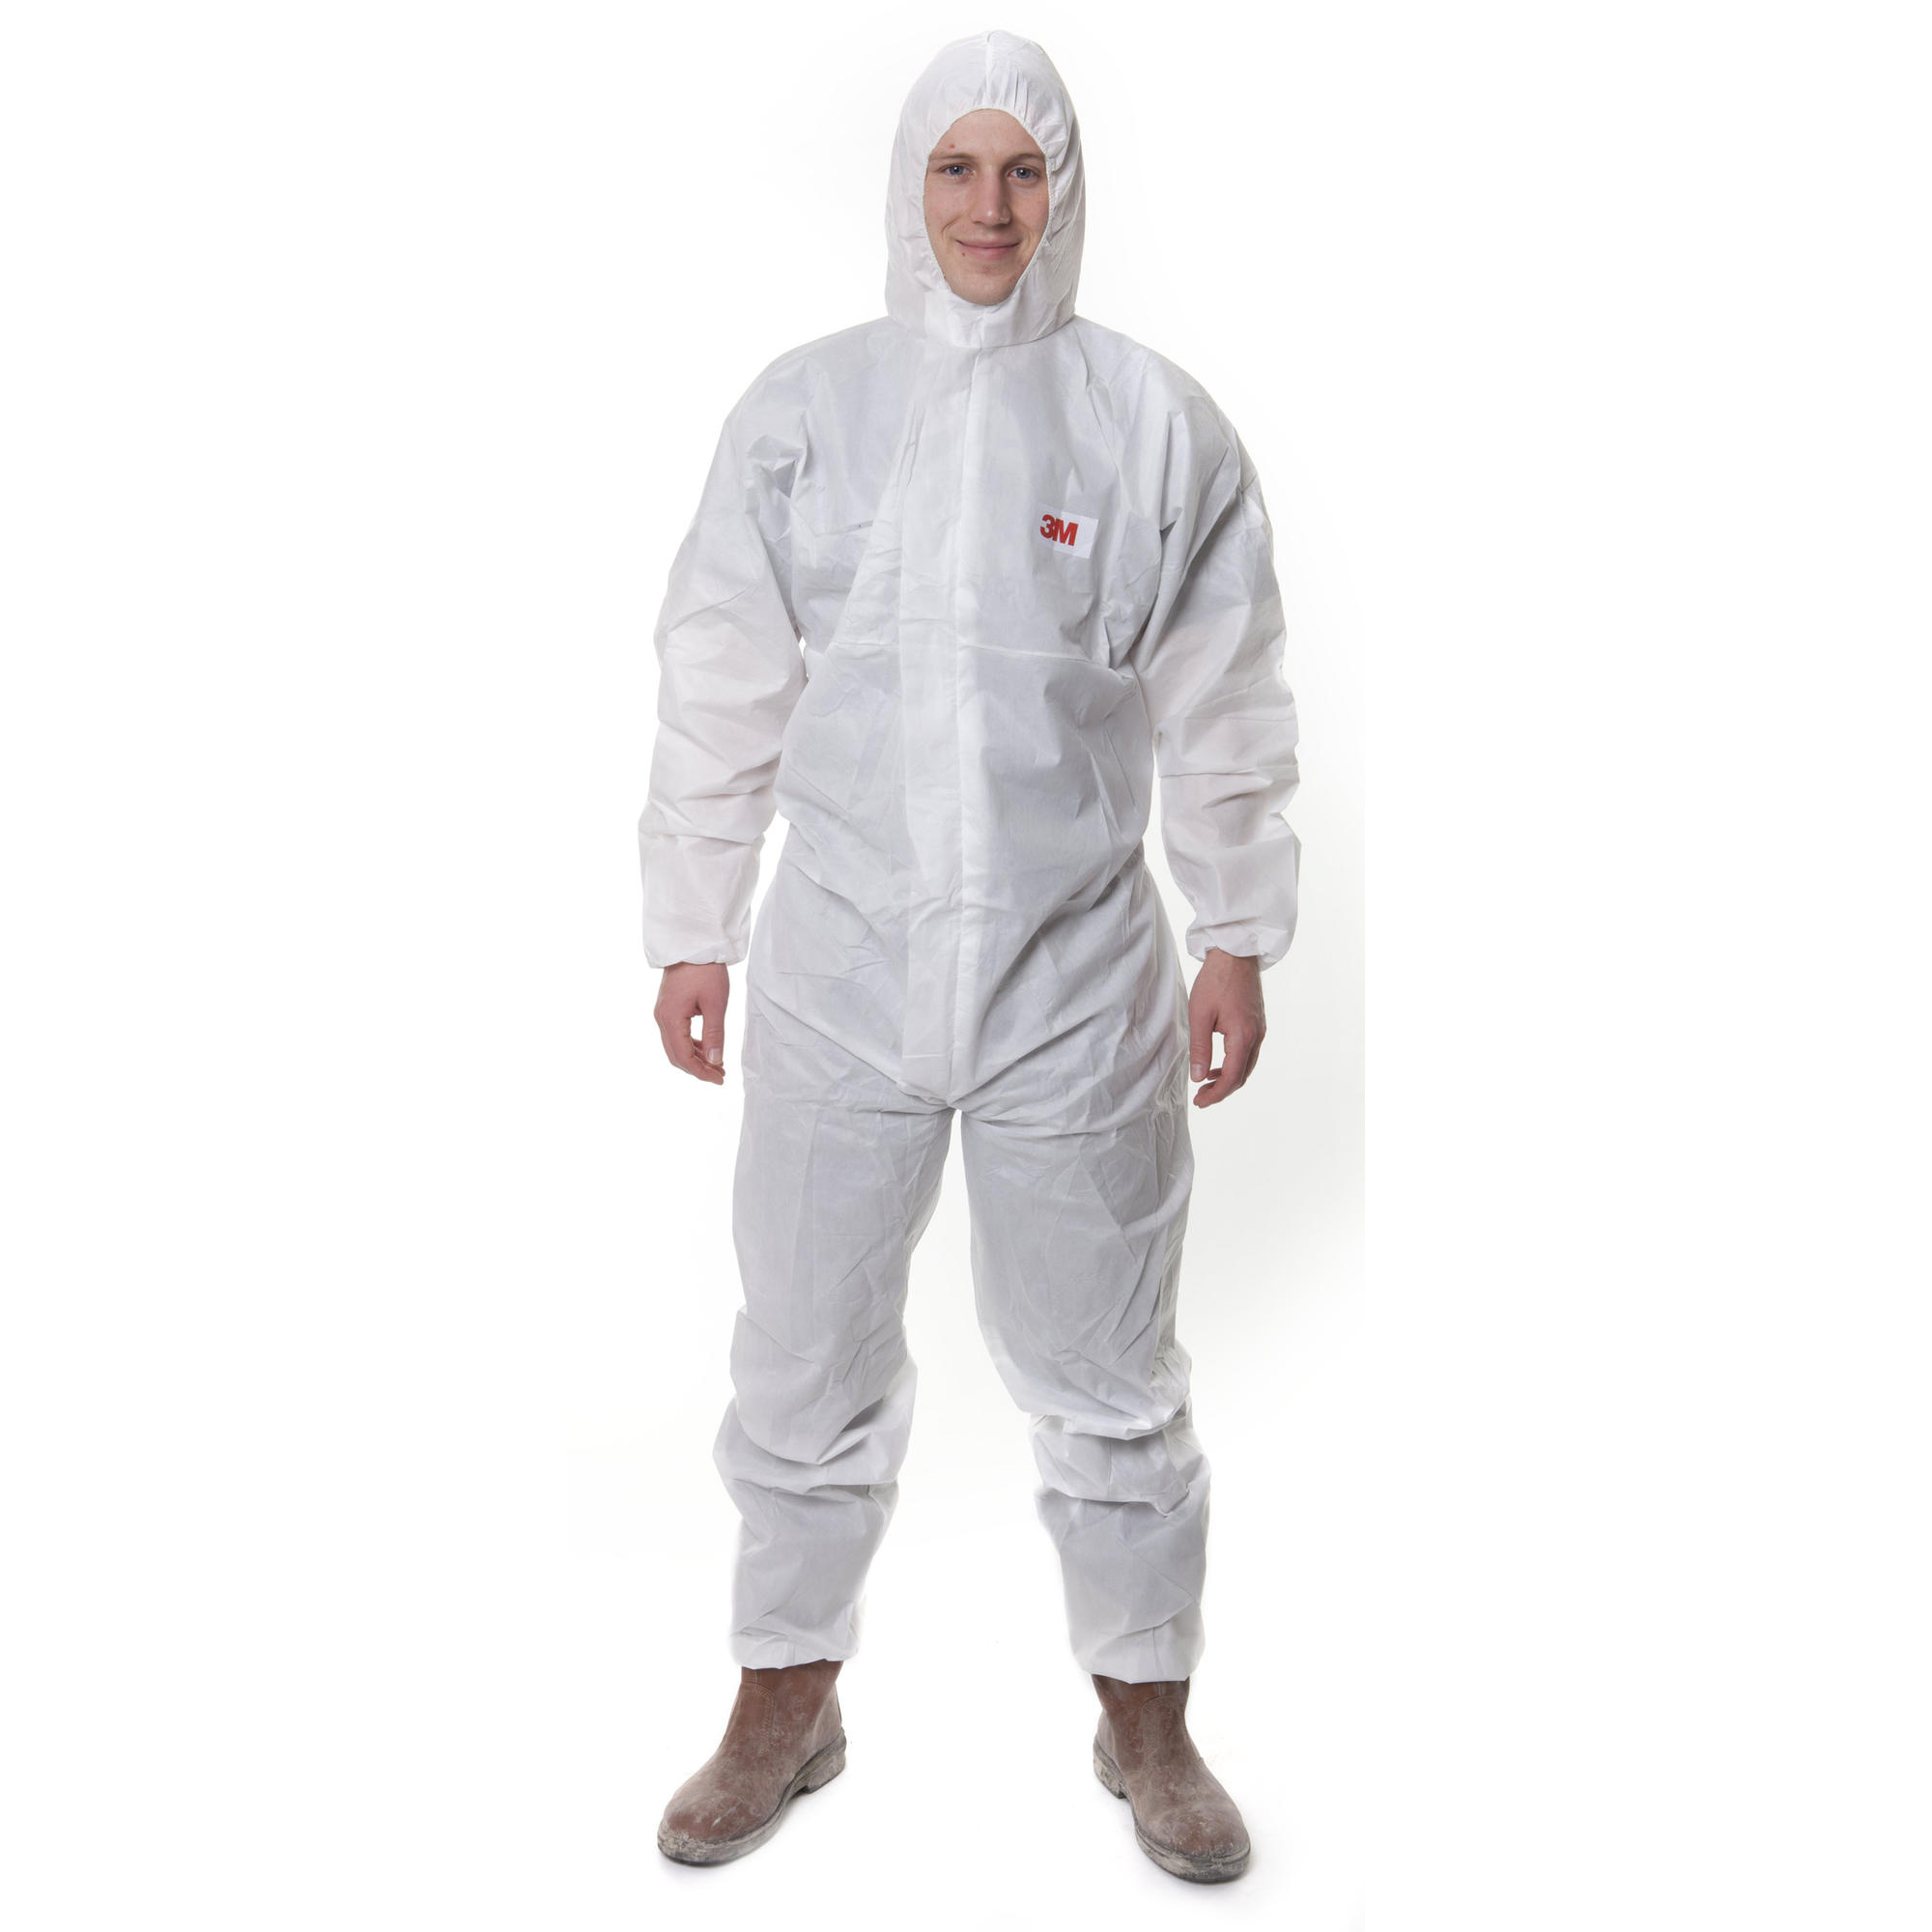 Image for 3M 4515 5/6 Coveralls 3XL White [Pack 20] Ref 4515WXXXL [Pack 20] Up to 3 Day Leadtime